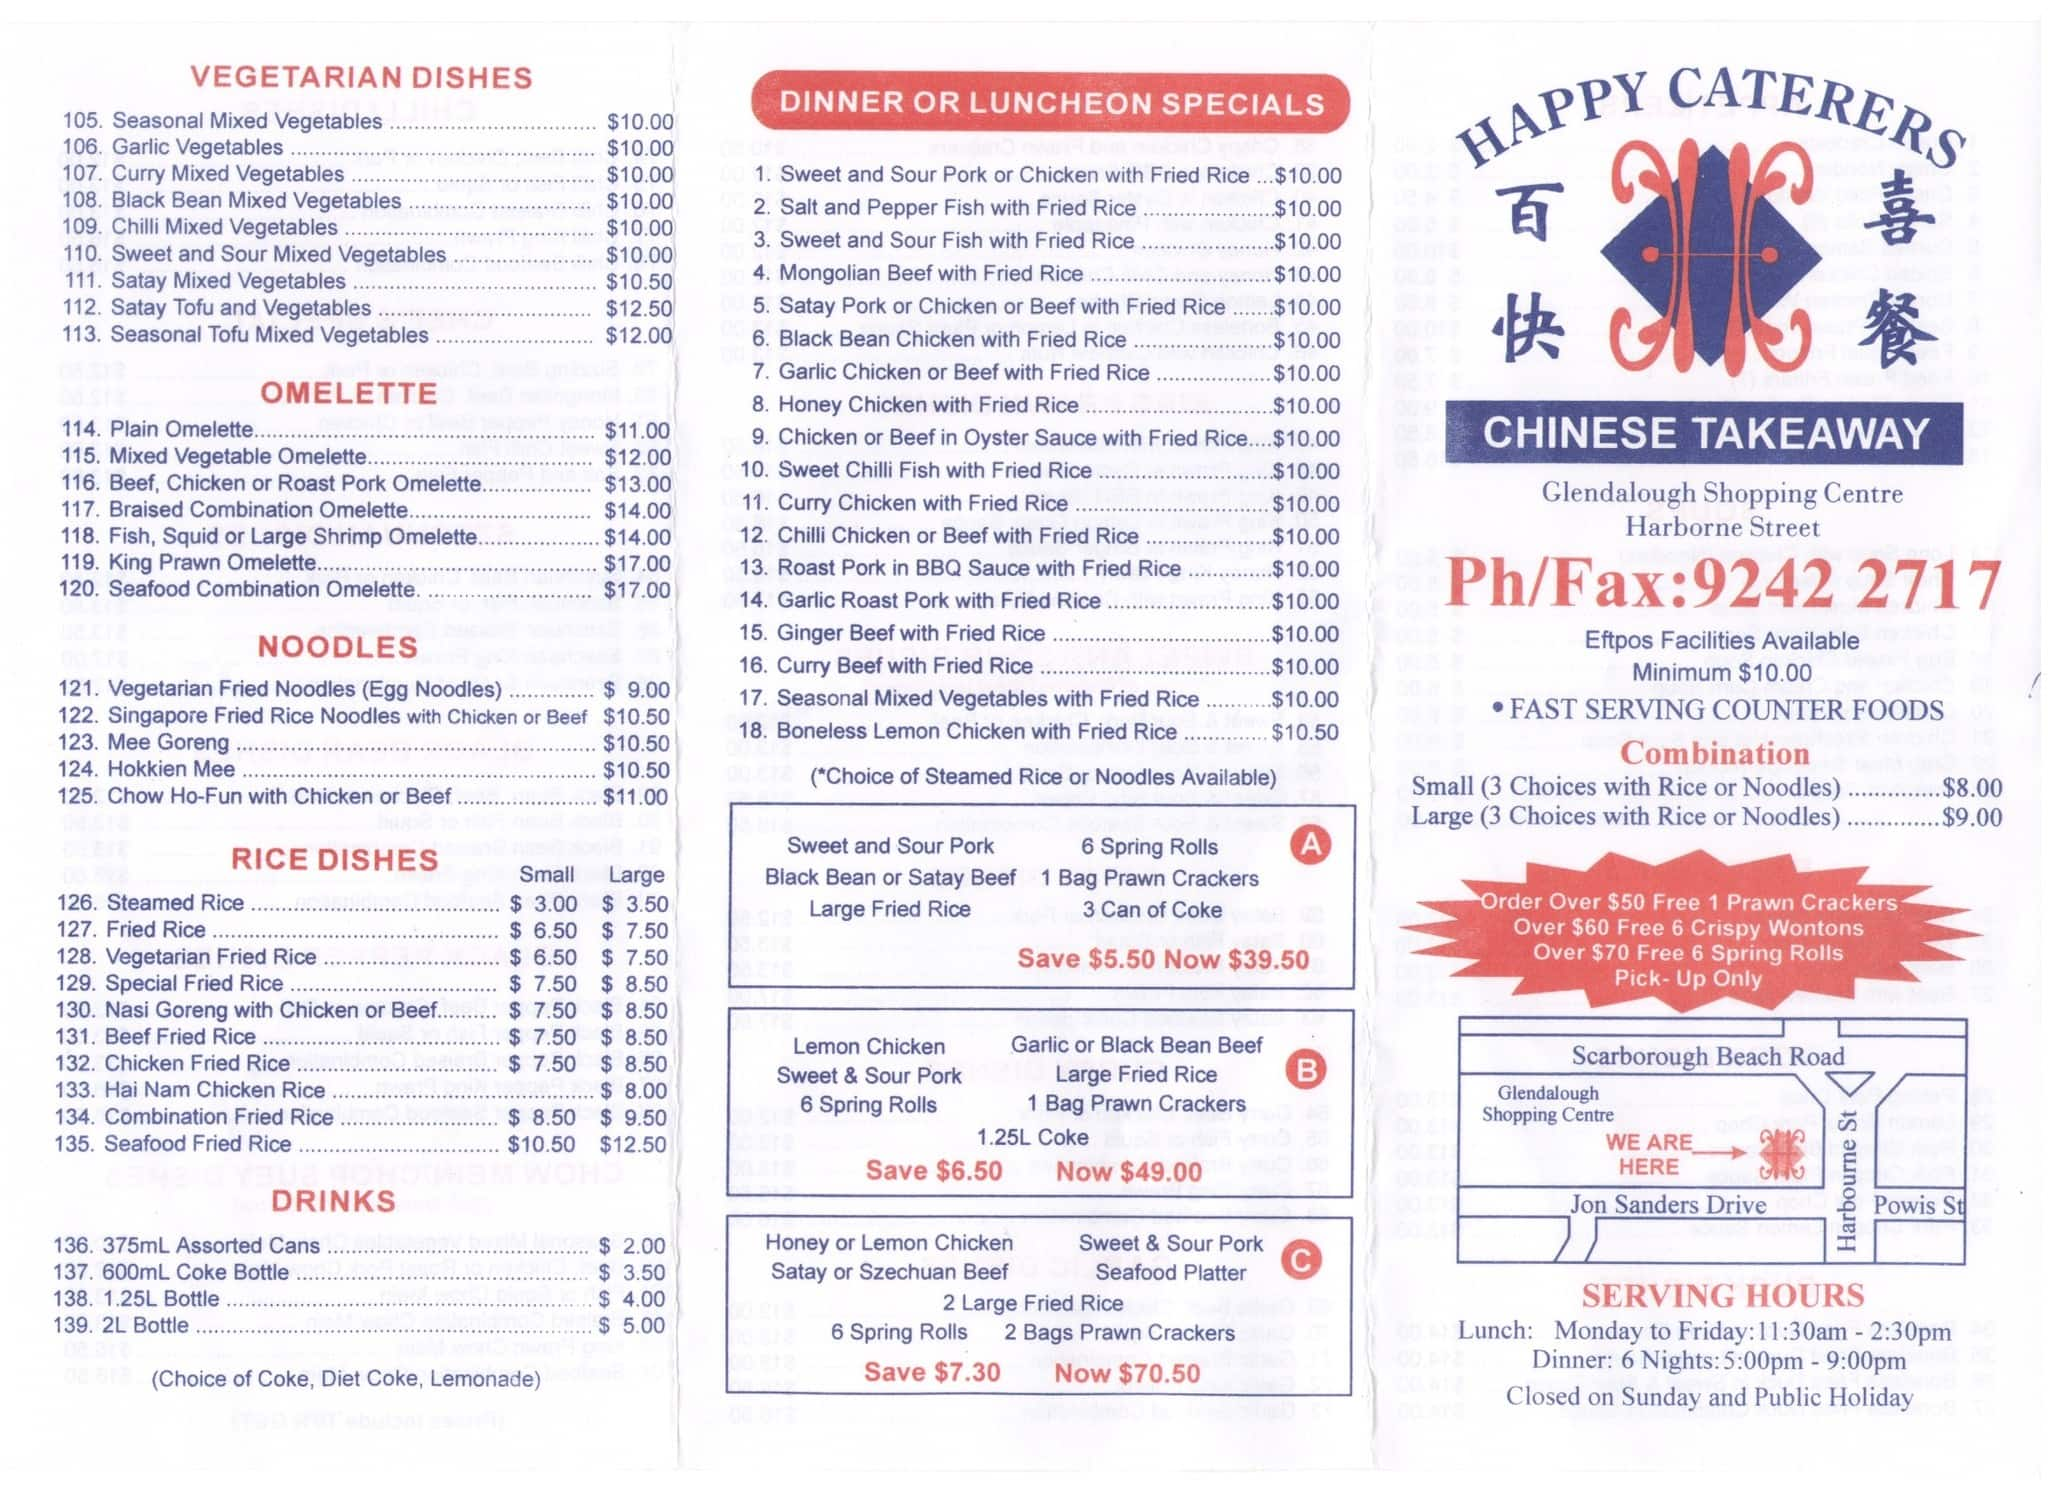 happy caterers chinese takeaway menu  urbanspoon/zomato